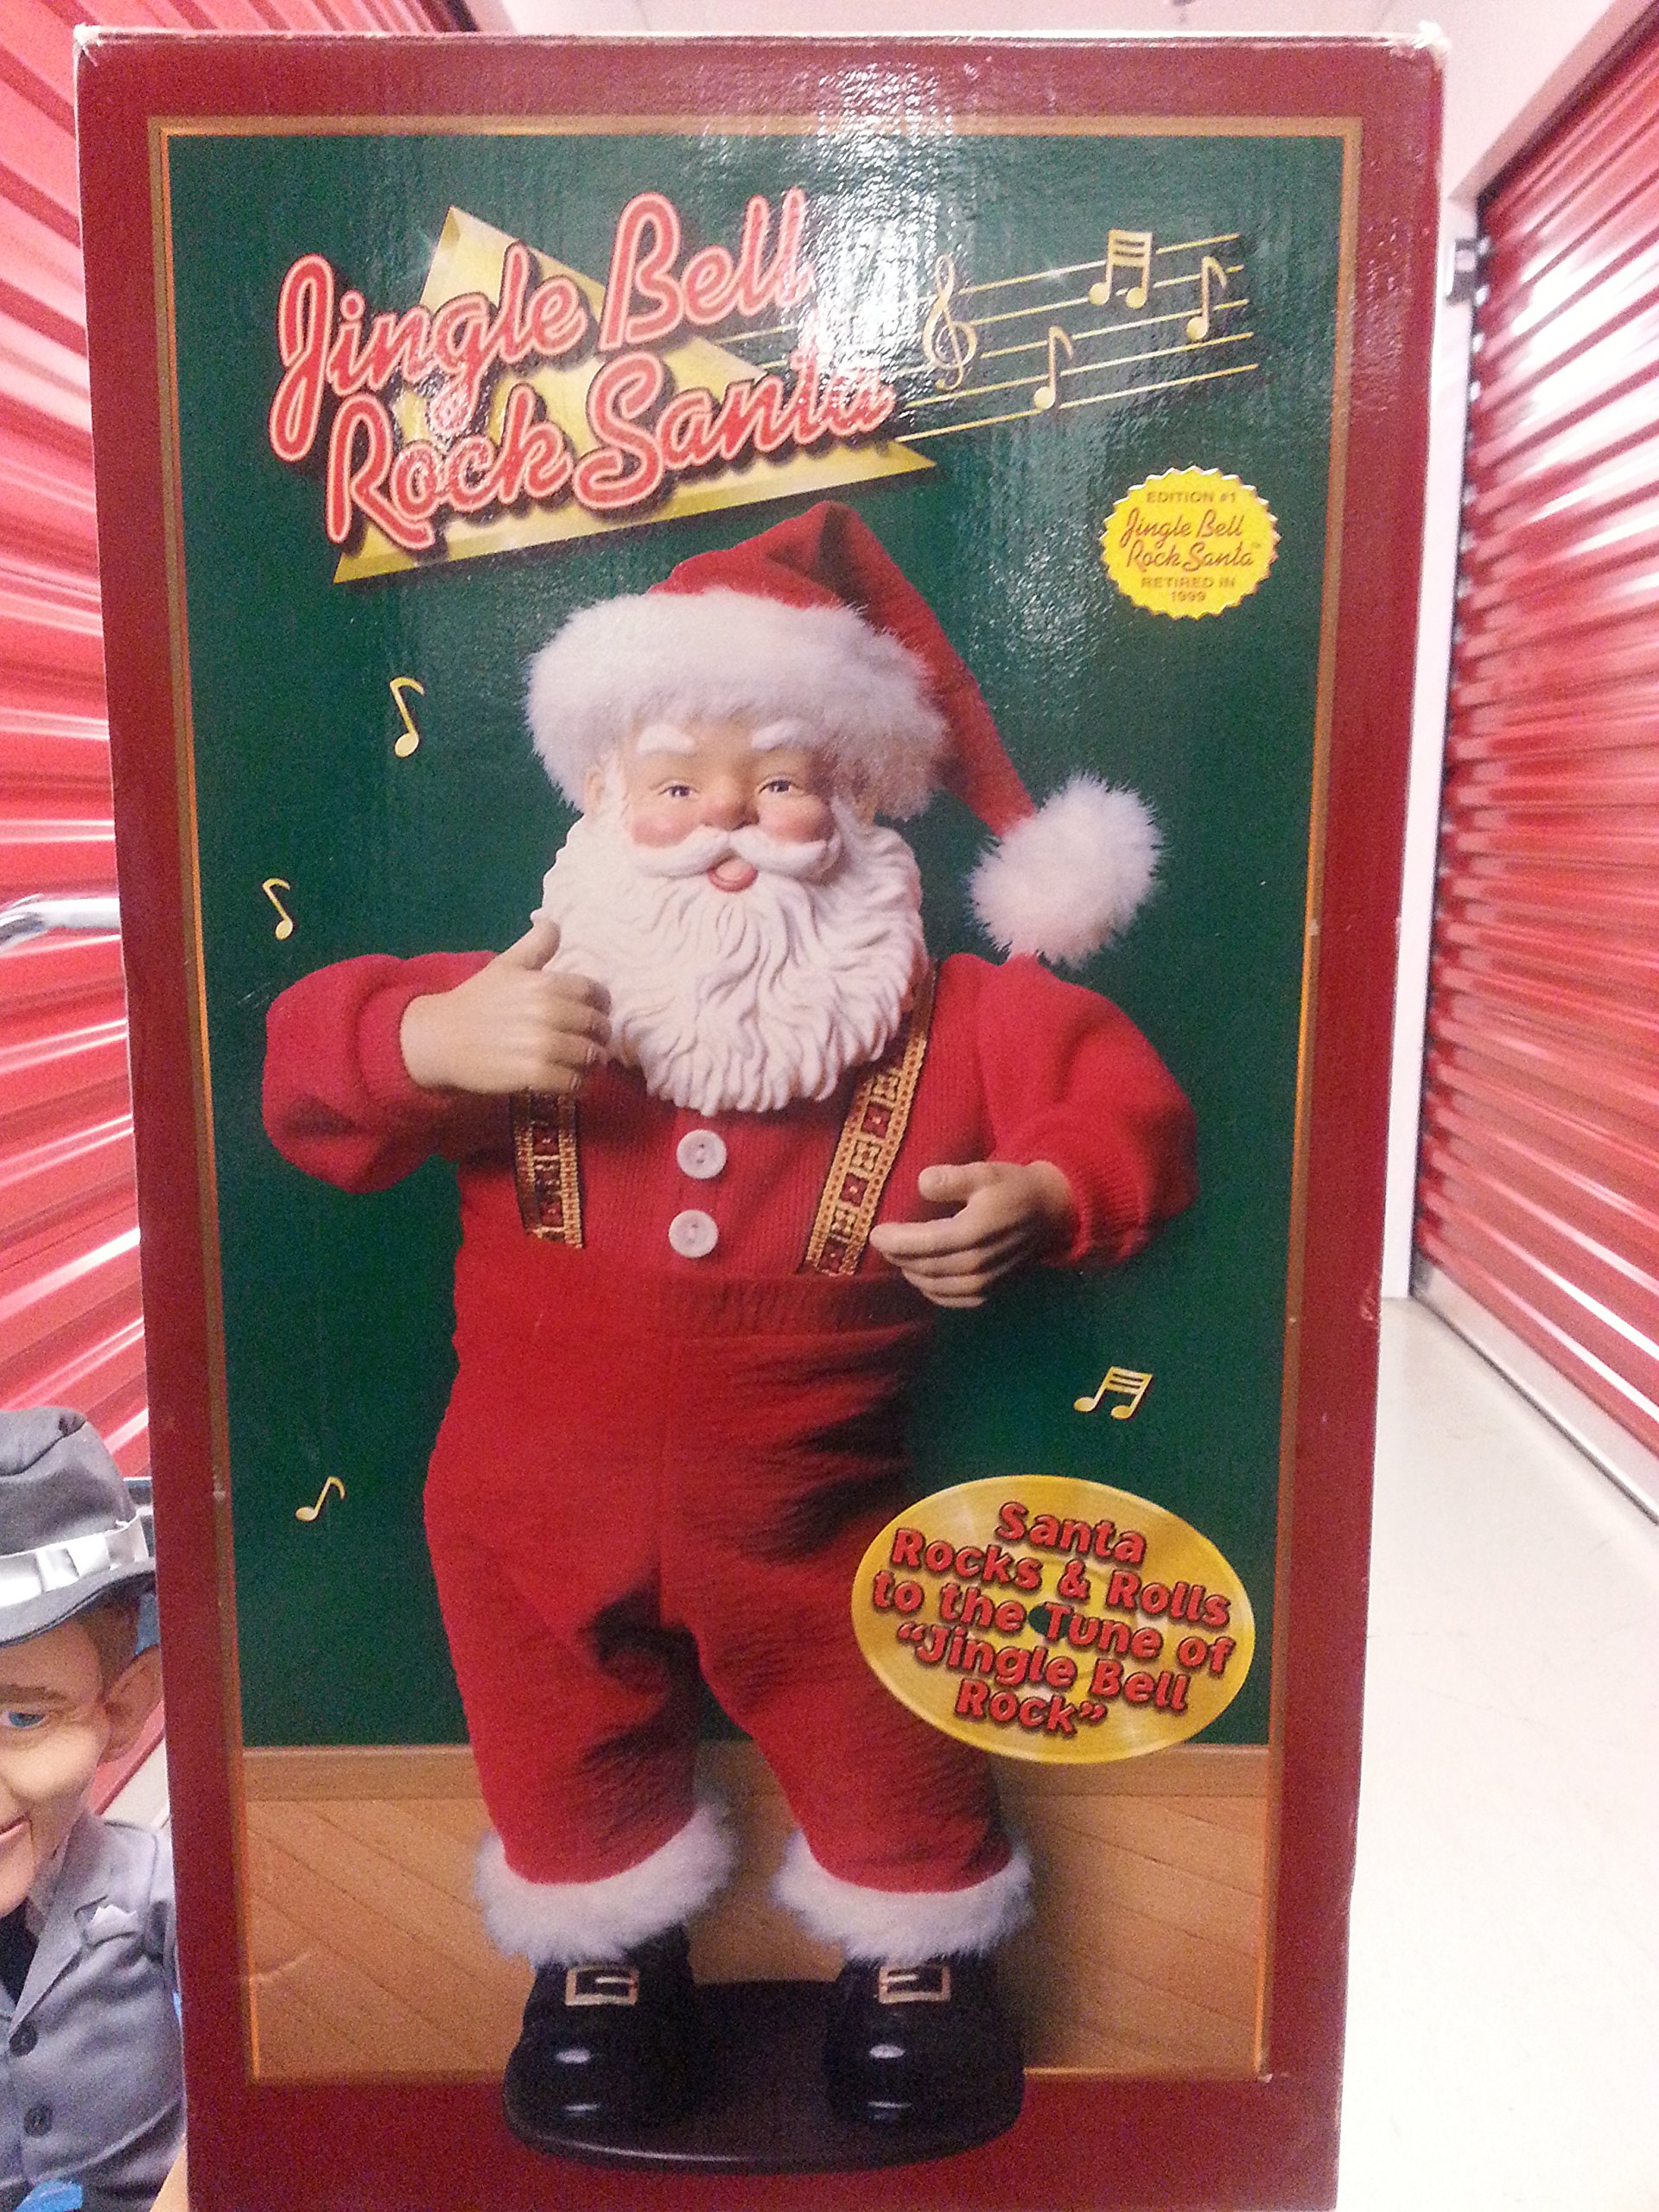 Jingle Bell Rock Santa Animated Dancing Singing Santa Claus